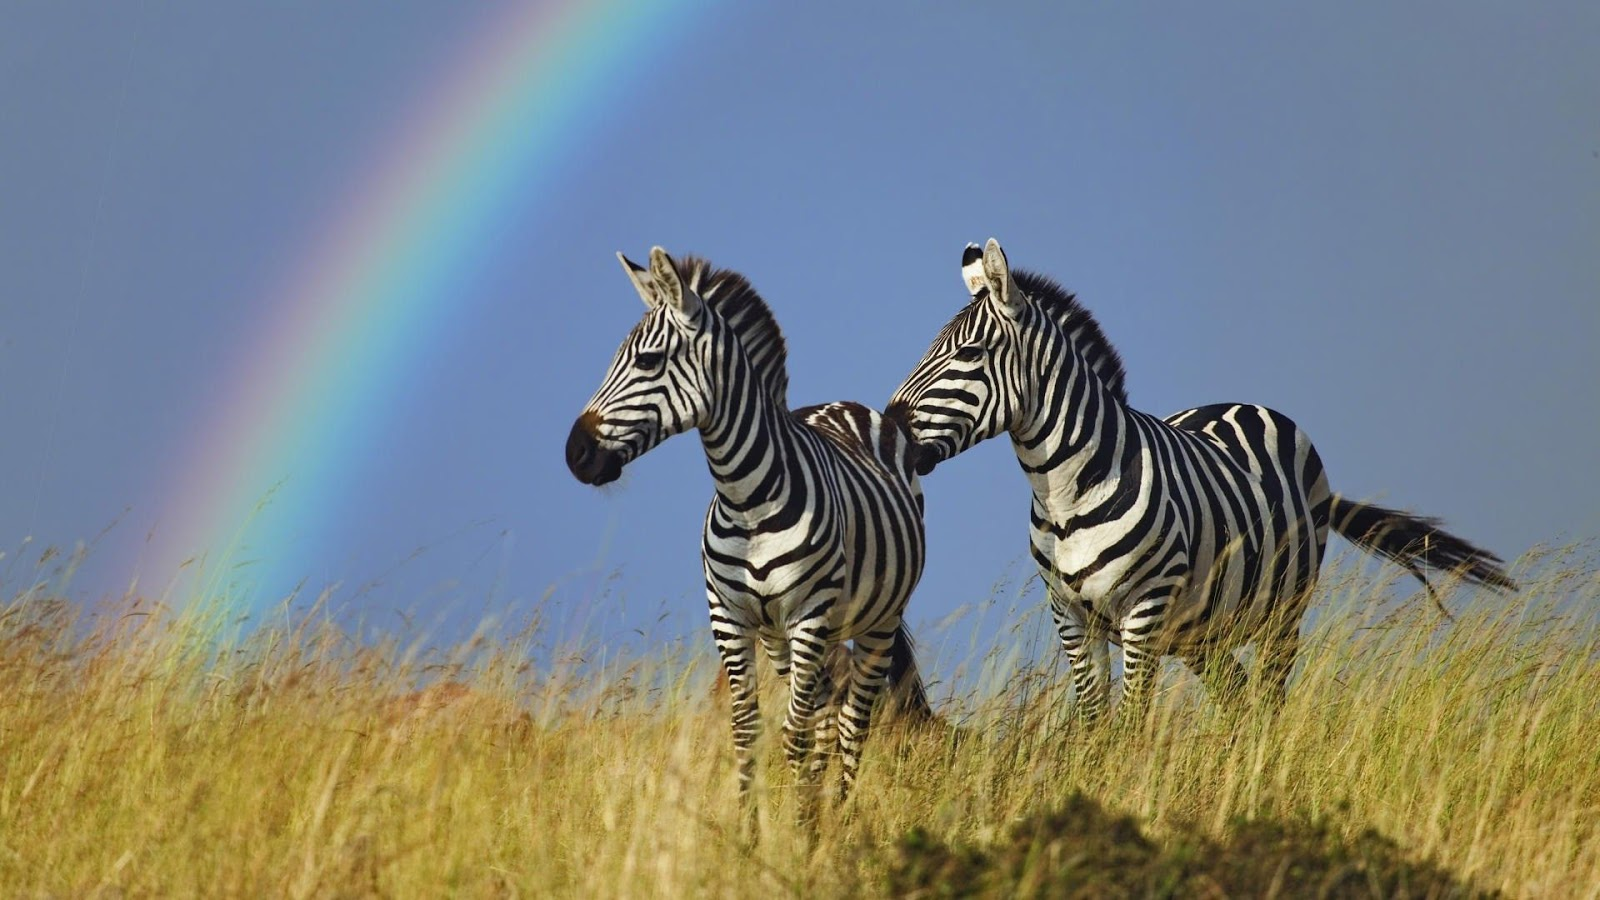 All Wallpapers: Zebra hd Wallpapers 2013